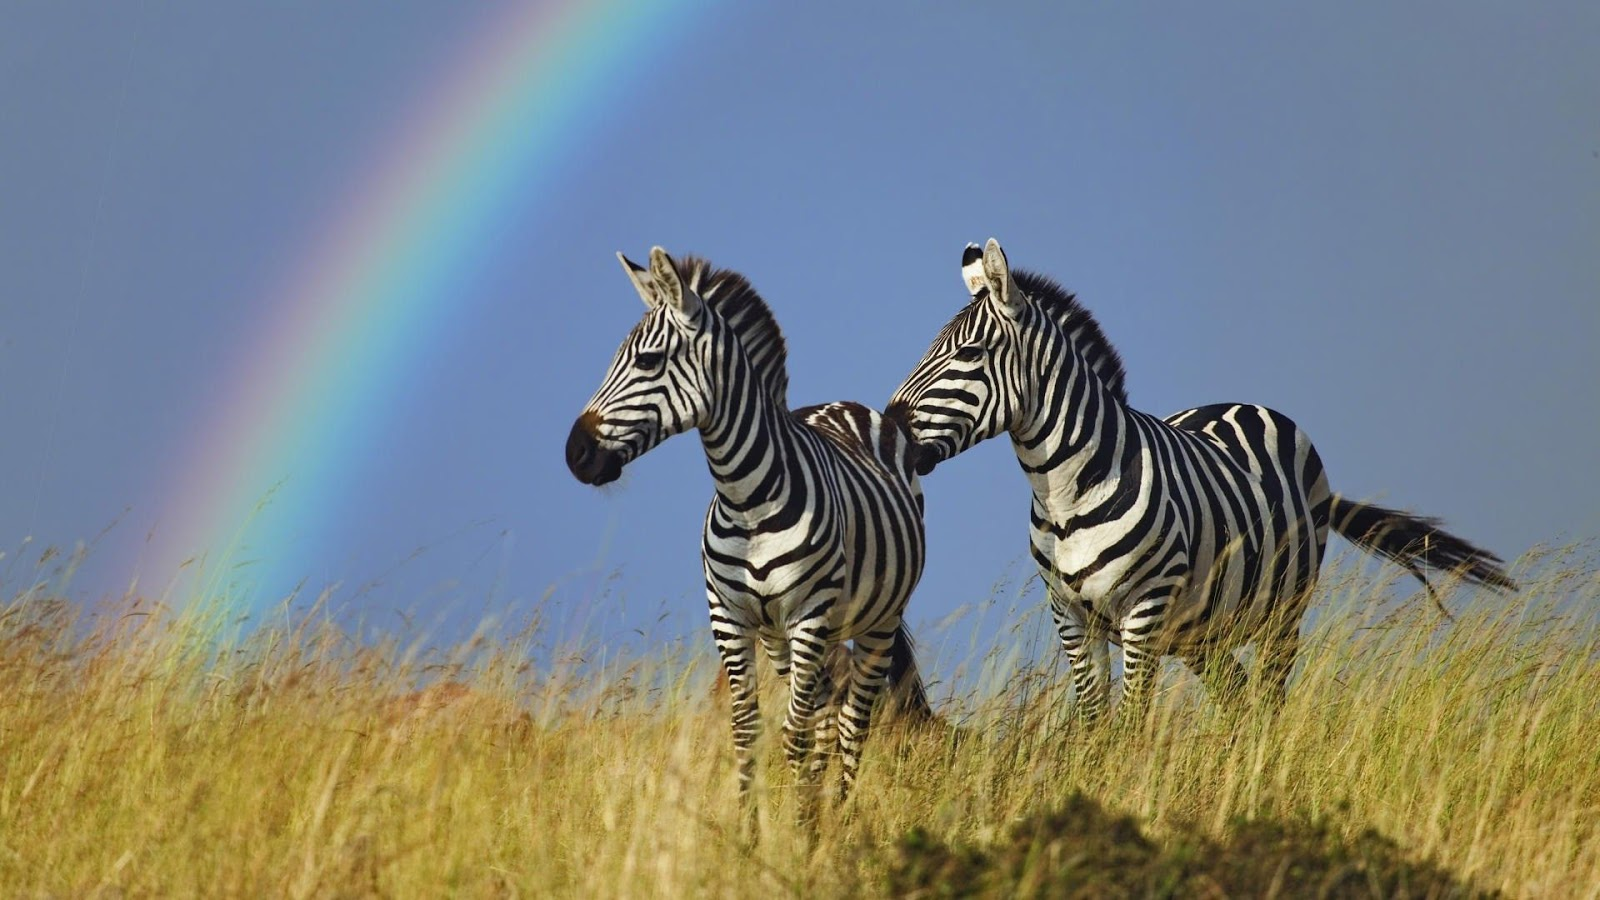 All Wallpapers: Zebra hd Wallpapers 2013